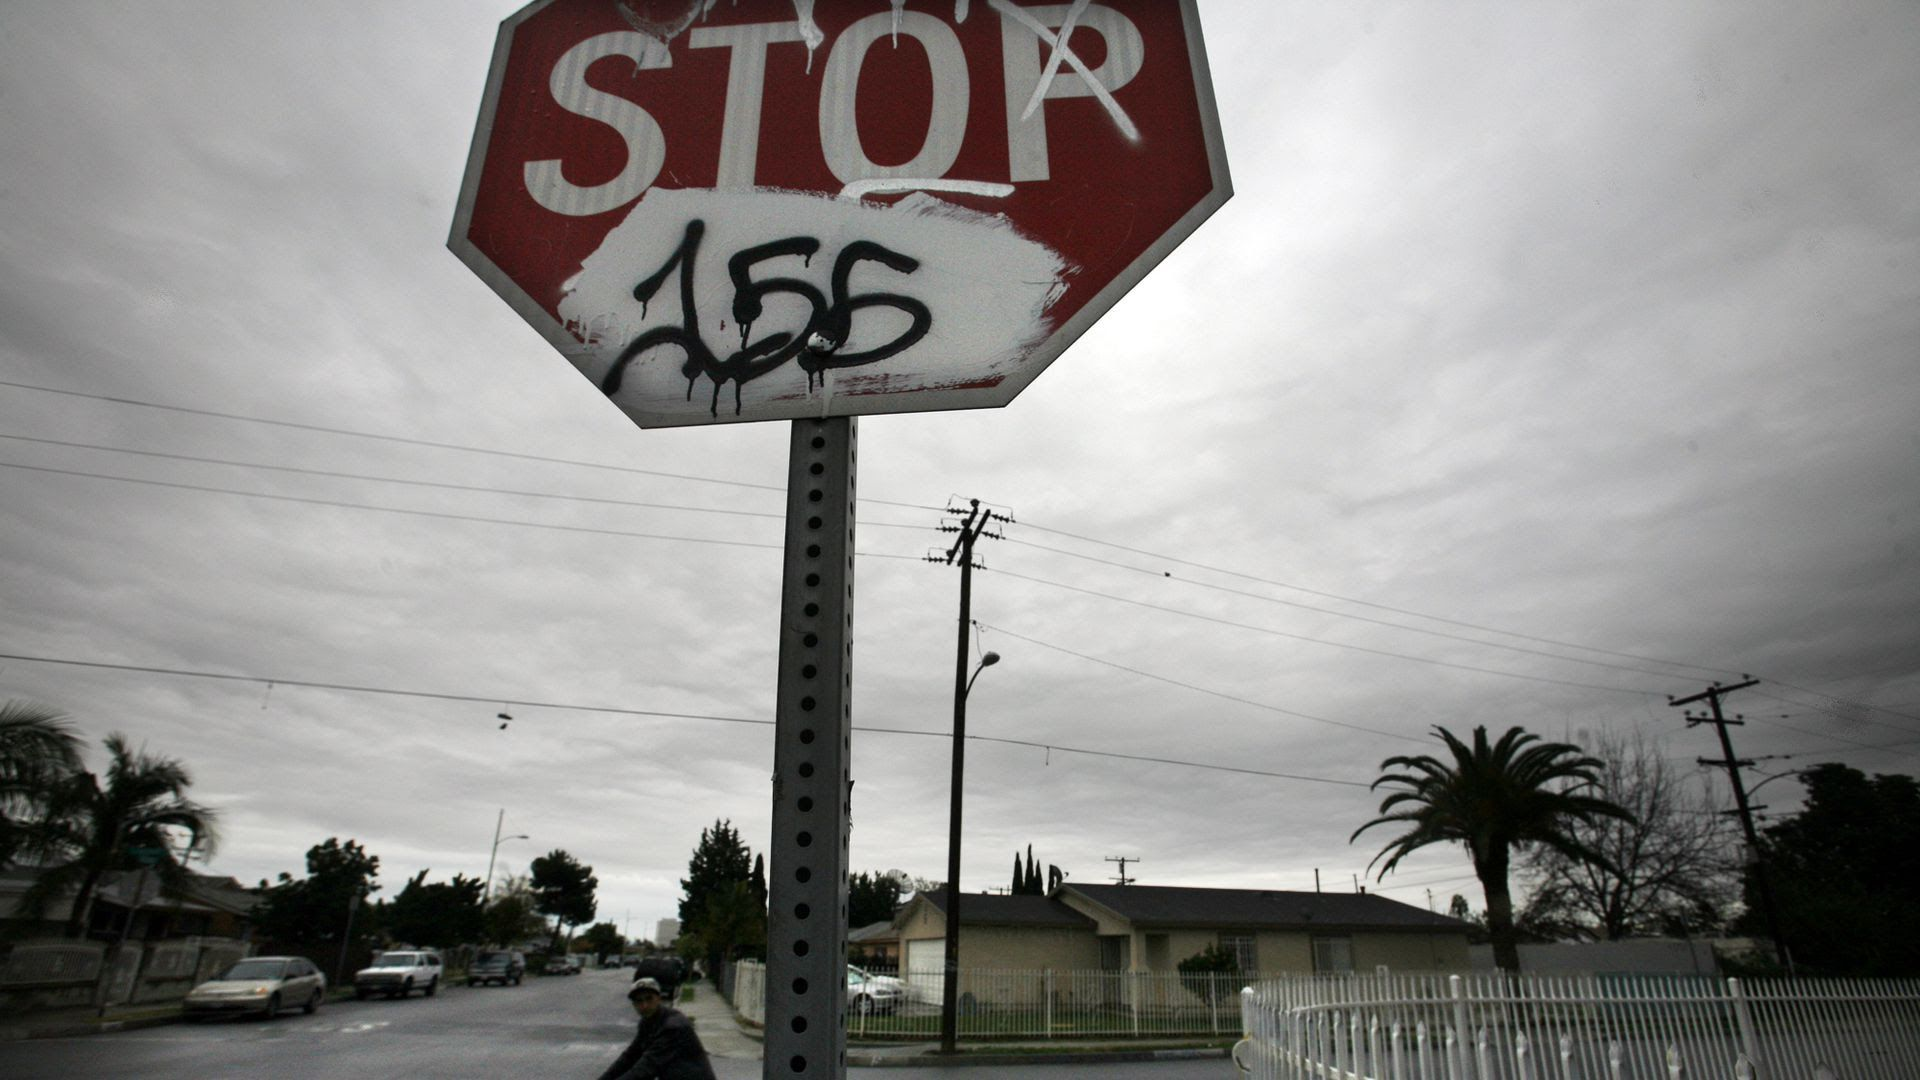 A gloomy stop sign